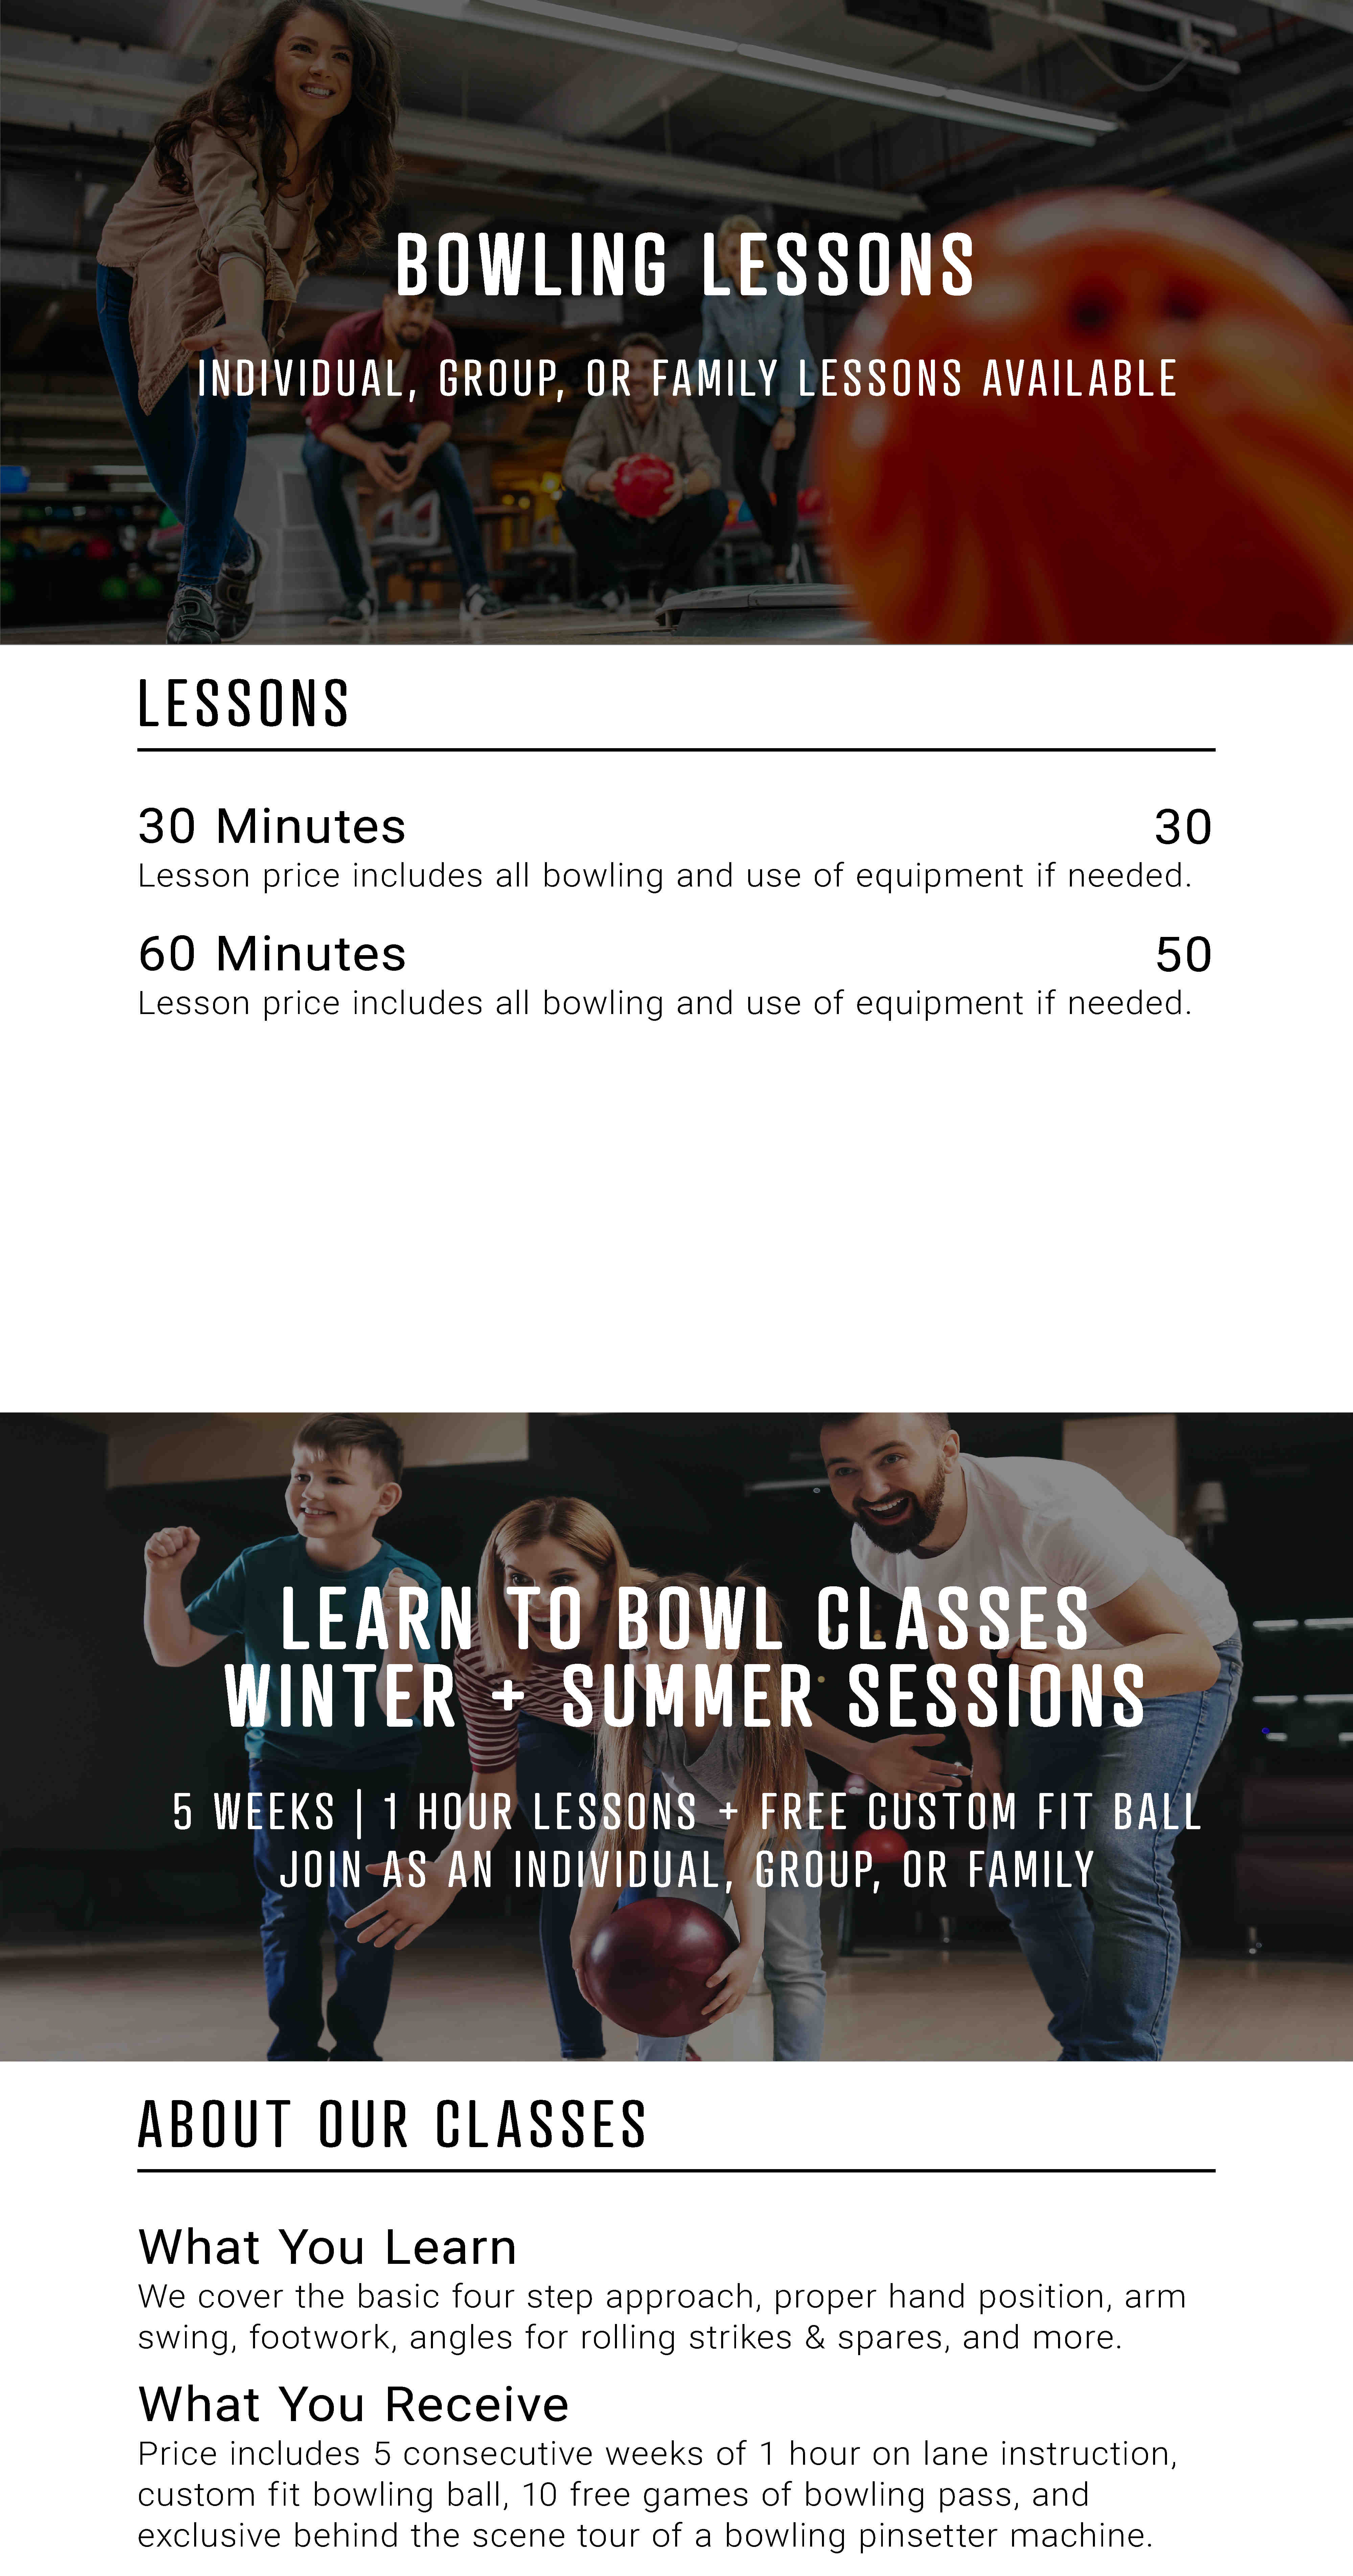 Bowling lessons and classes